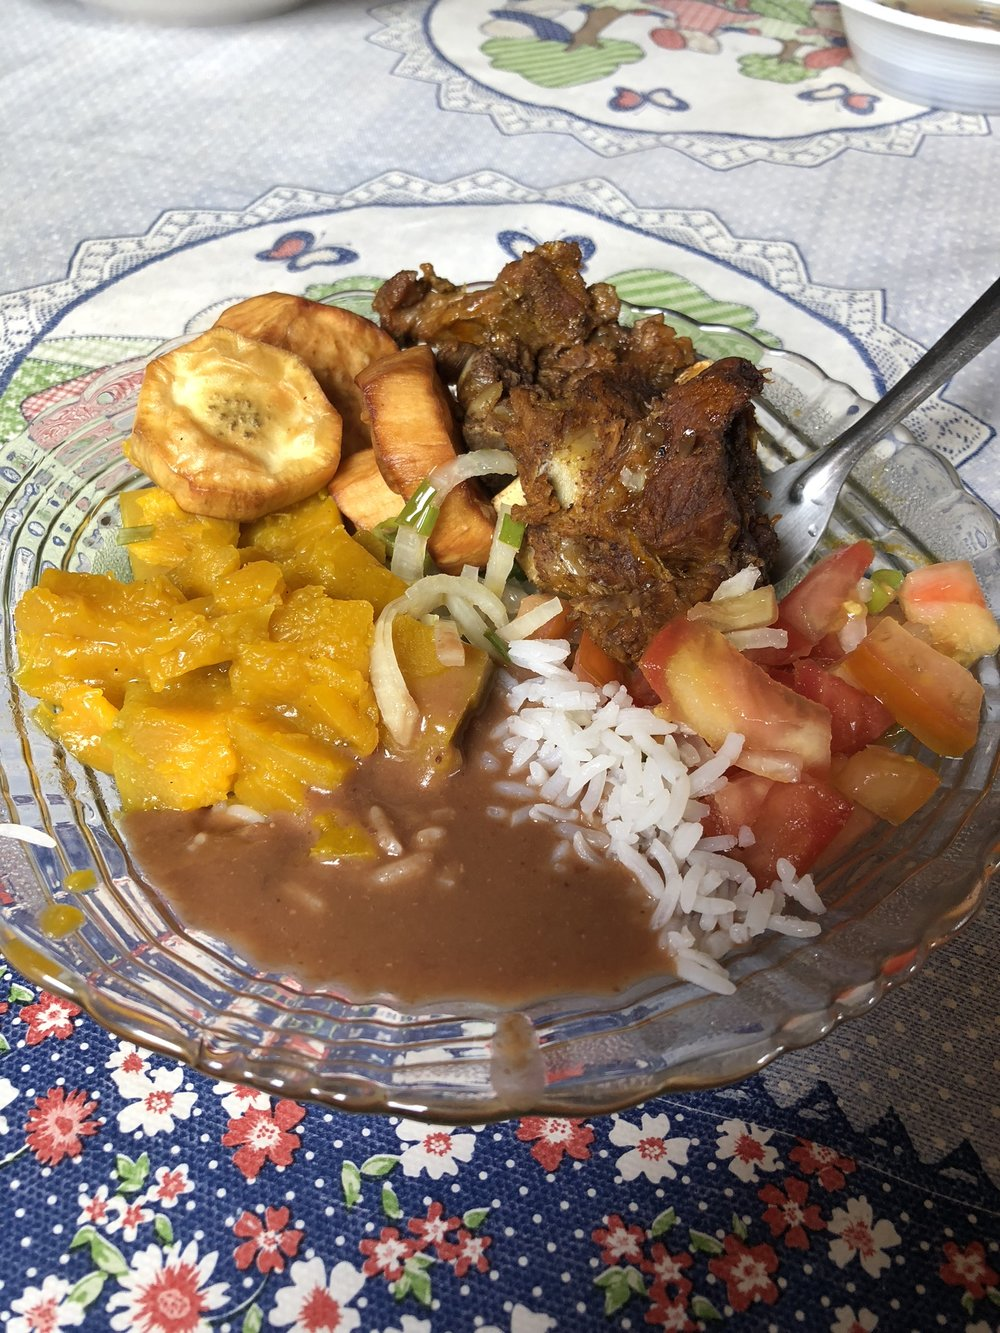 Typical meal: Rice and beans (always), ribs, tomatoes and plantains